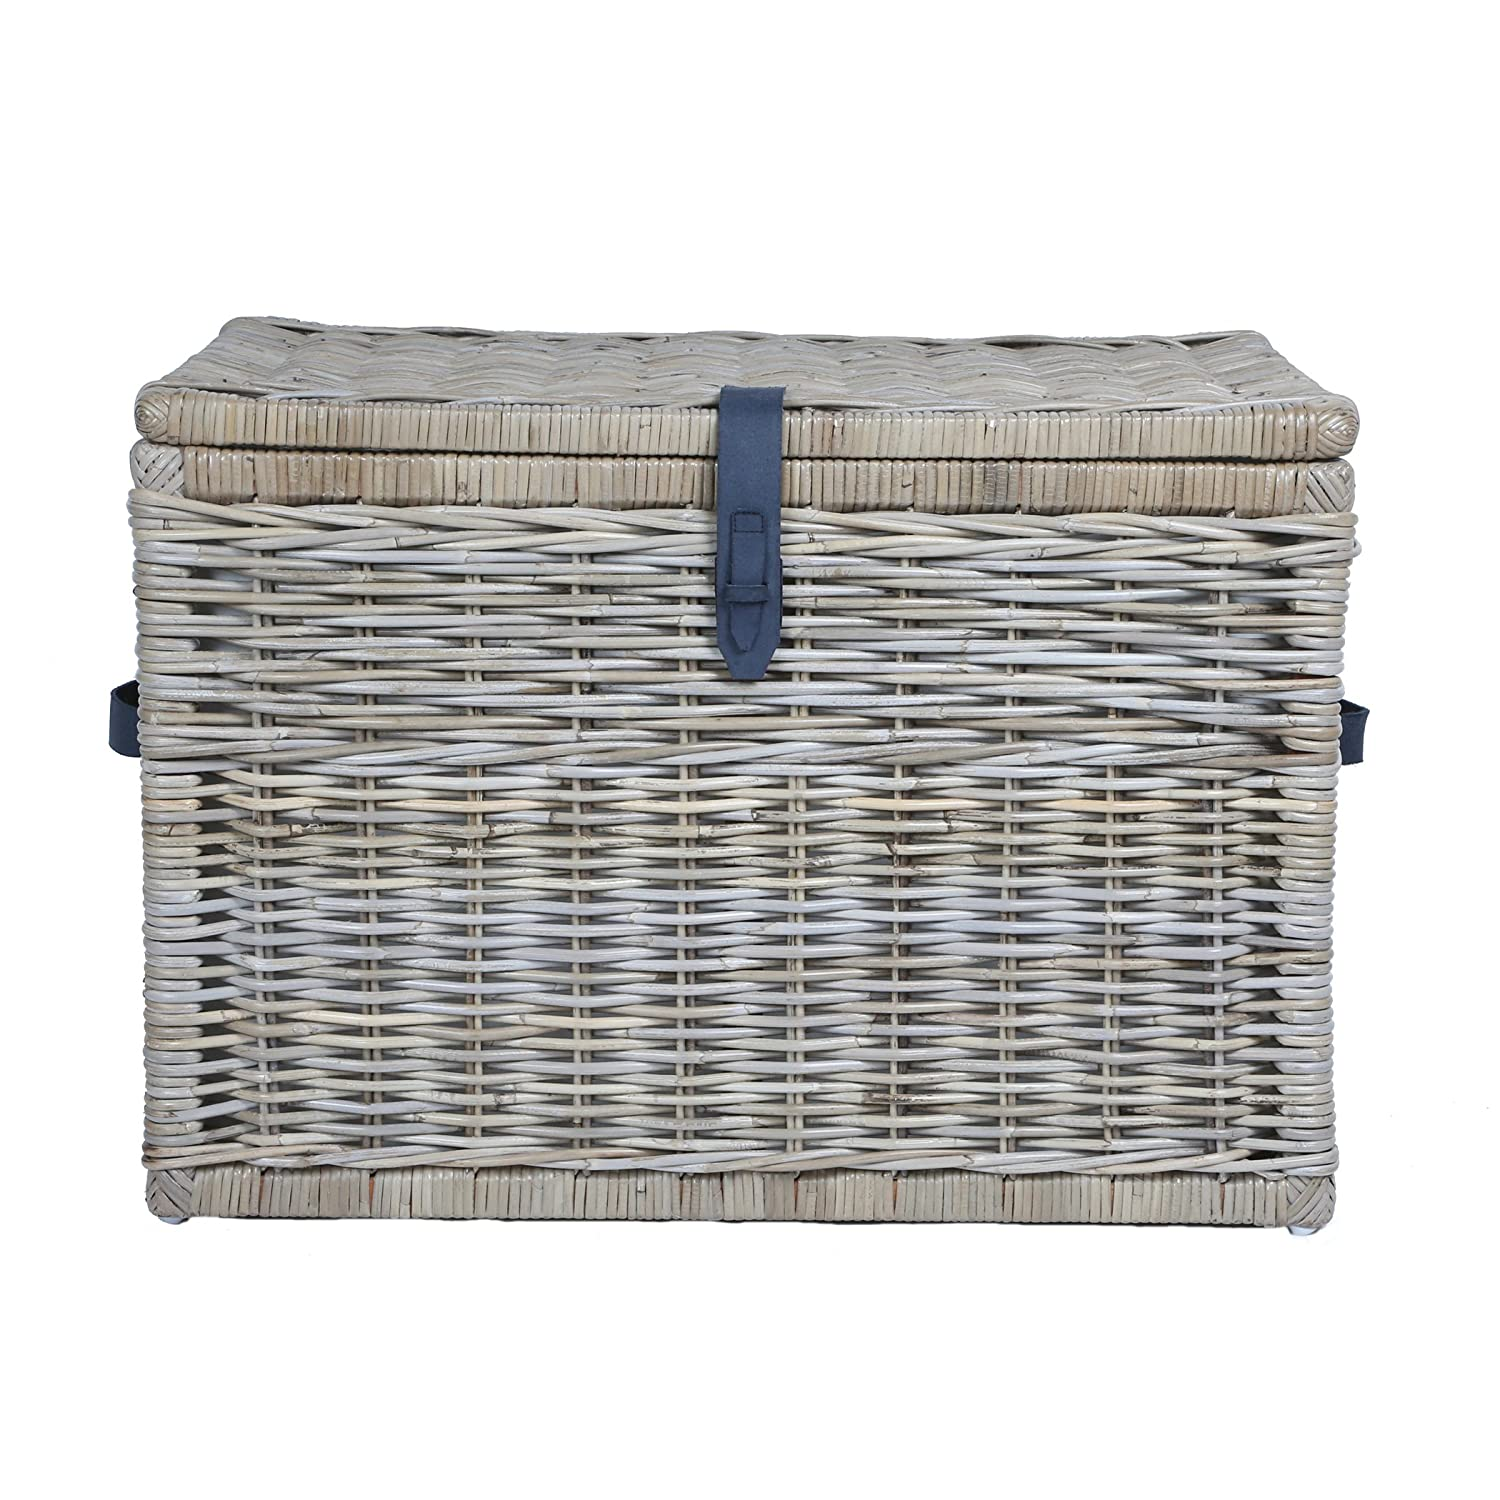 High Quality Amazon.com: The Basket Lady Deep Wicker Storage Trunk | Wicker Storage Chest,  XL, Serene Grey: Home U0026 Kitchen